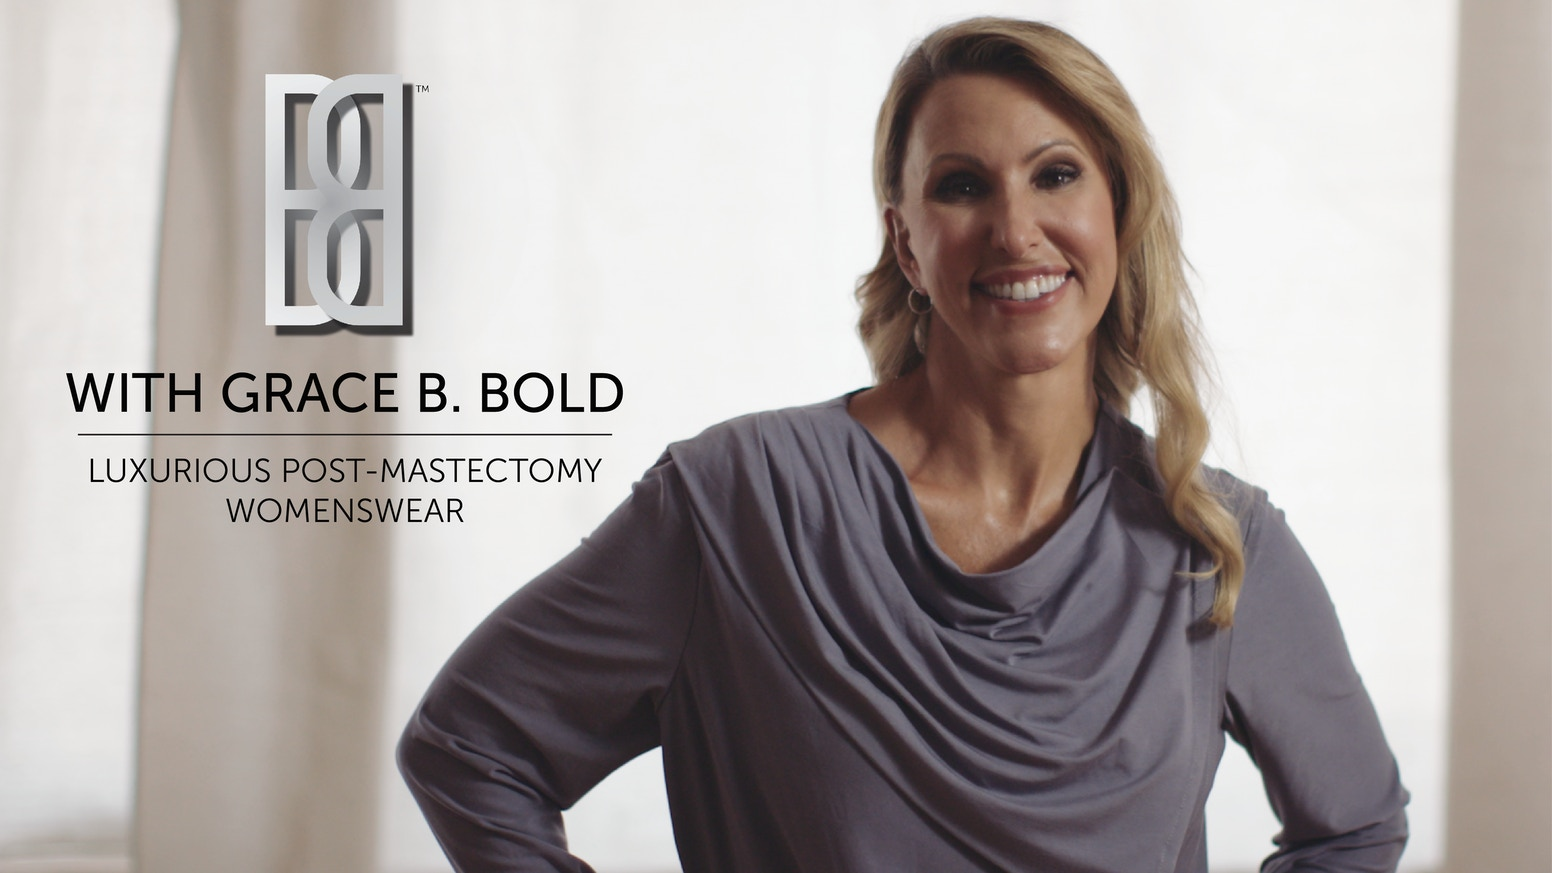 With Grace B. Bold™ is a luxurious collection of post-mastectomy womenswear in support of women undergoing treatment for breast cancer.